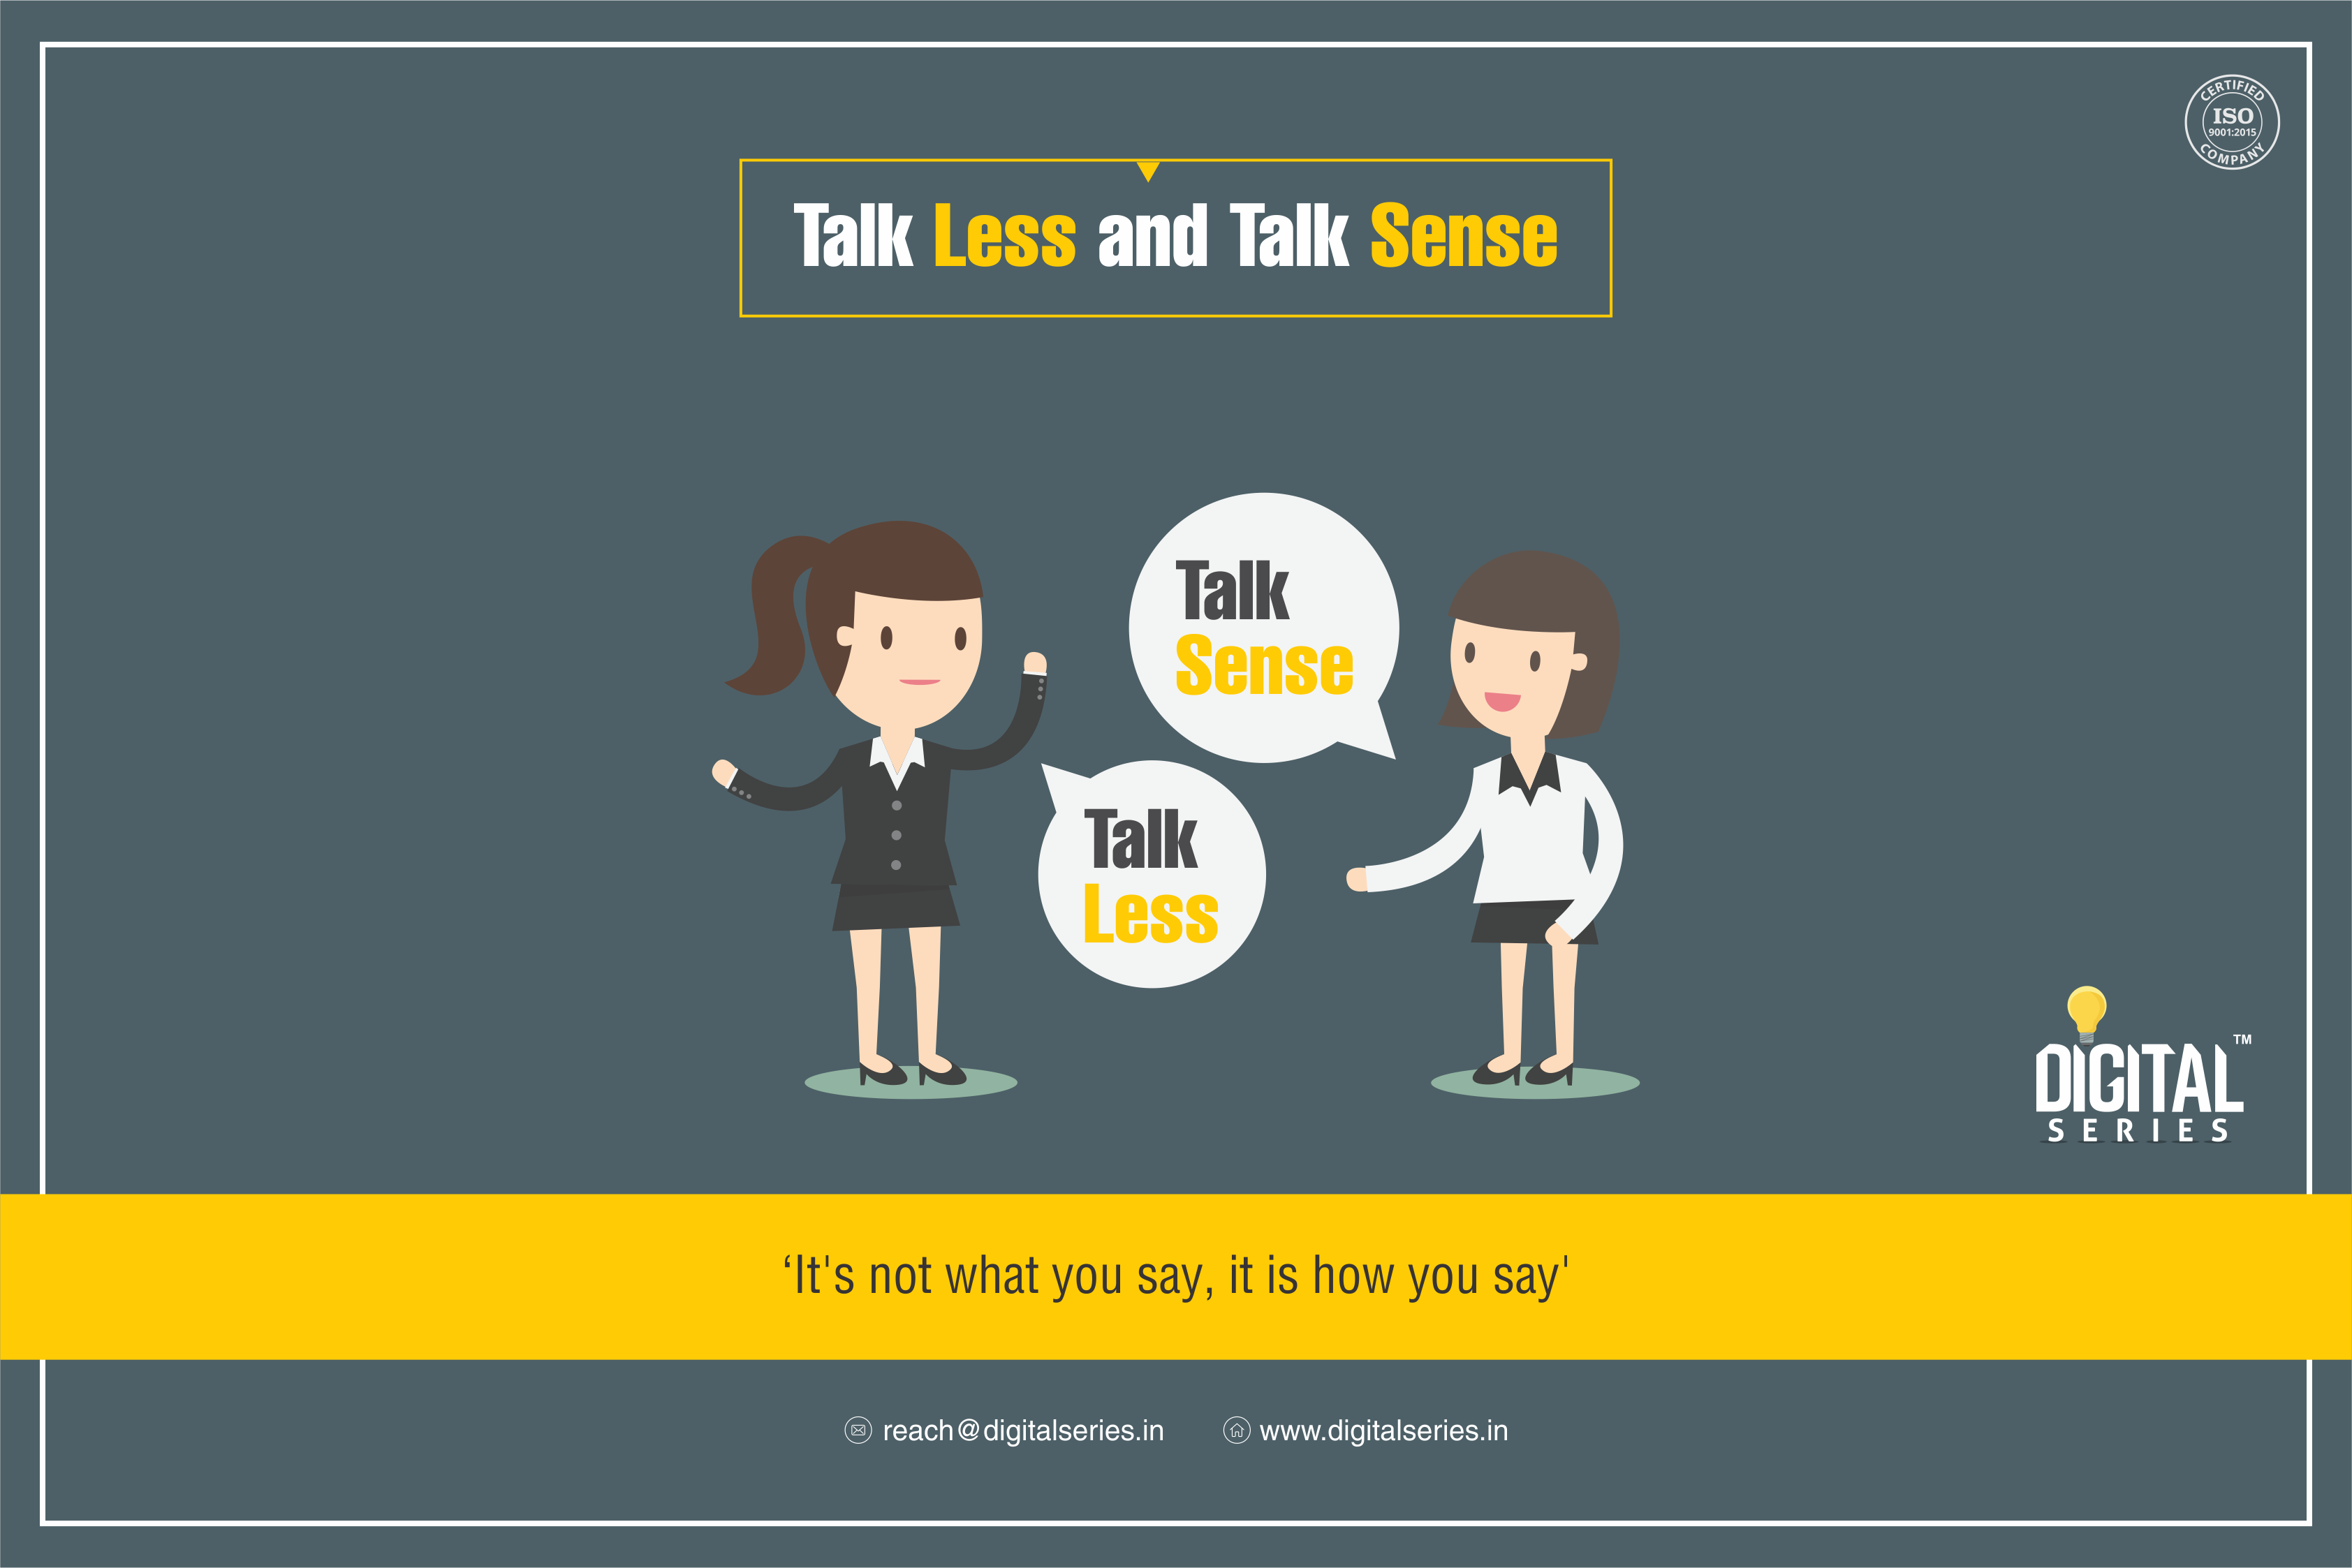 Talk Less and Talk Sense